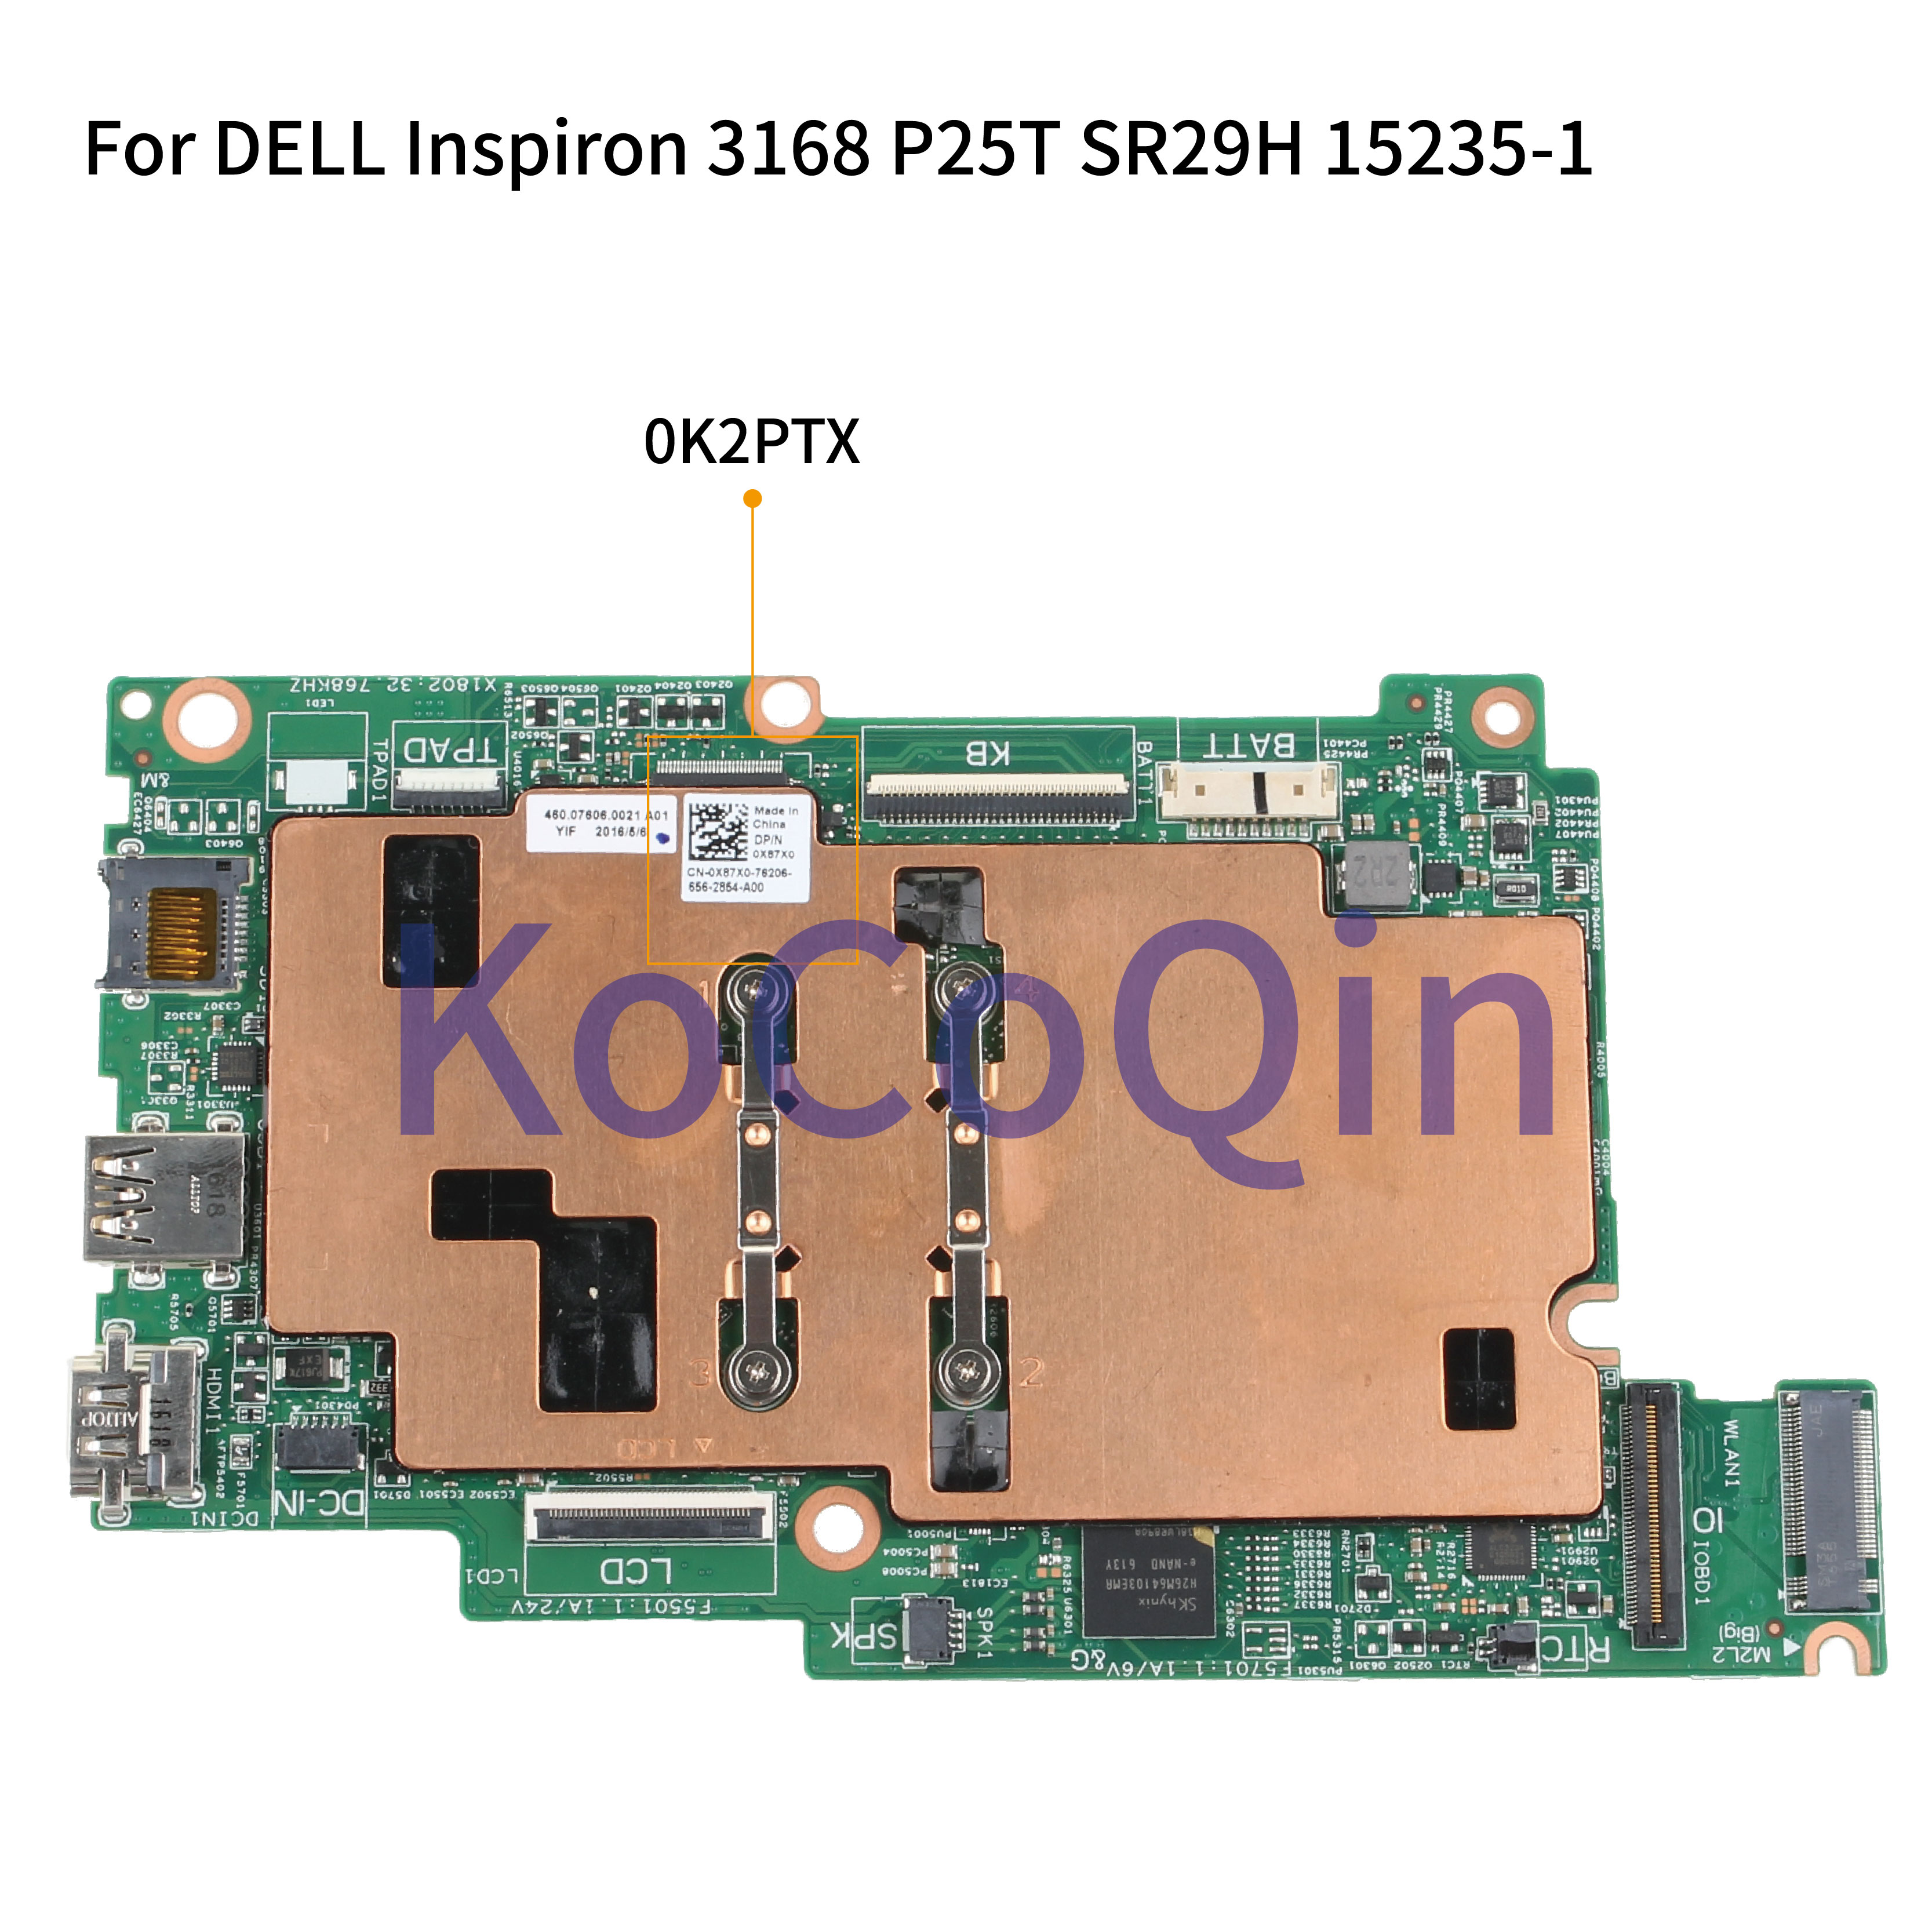 KoCoQin Laptop Motherboard For DELL Inspiron 3162 3168 P25T Core N3050 SR29H 2GB Ram 32GB HD Mainboard CN-0K2PTX 0K2PTX 15235-1